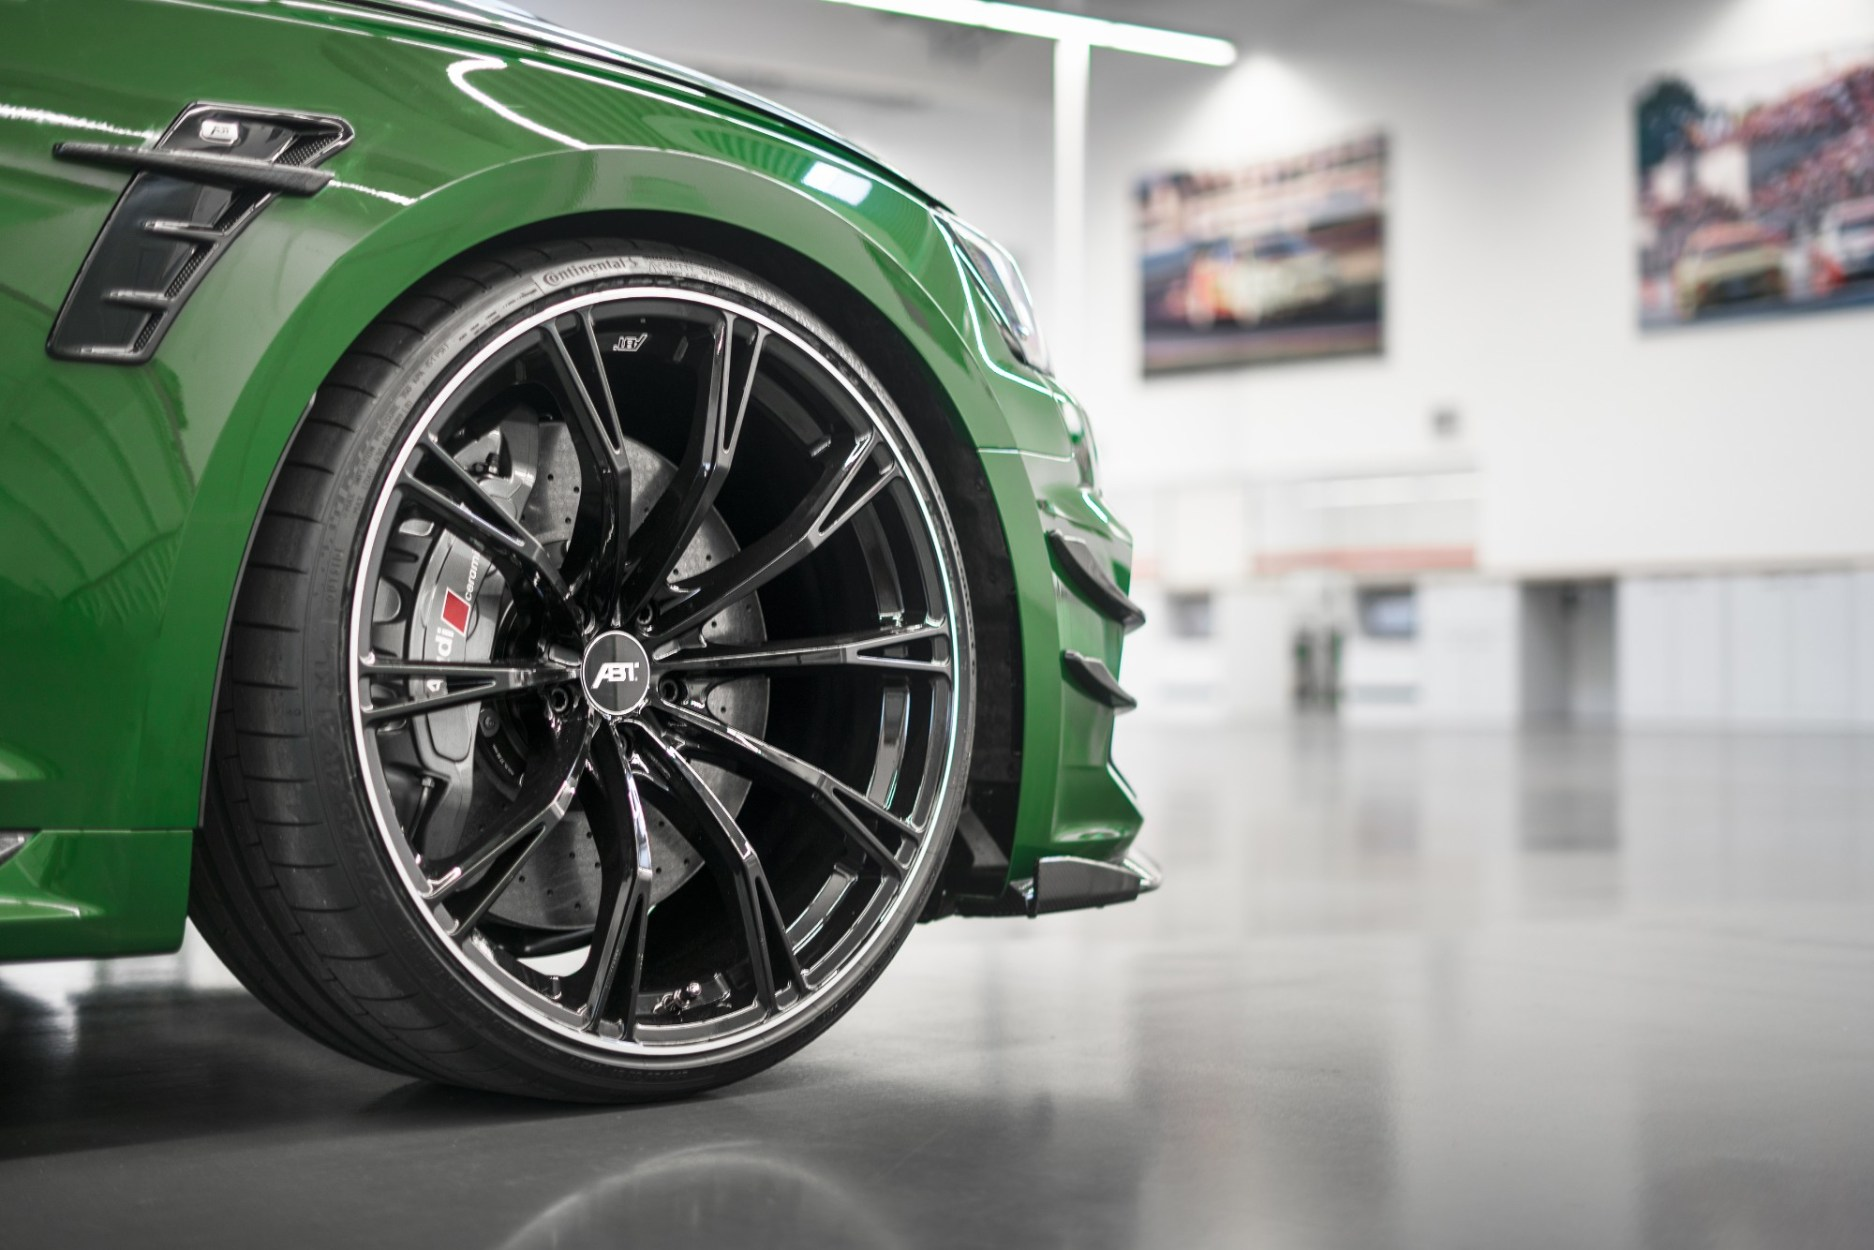 ABT GR20 Wheels Now Also Available for Audi A3, S3, RS3 and Several VW Models